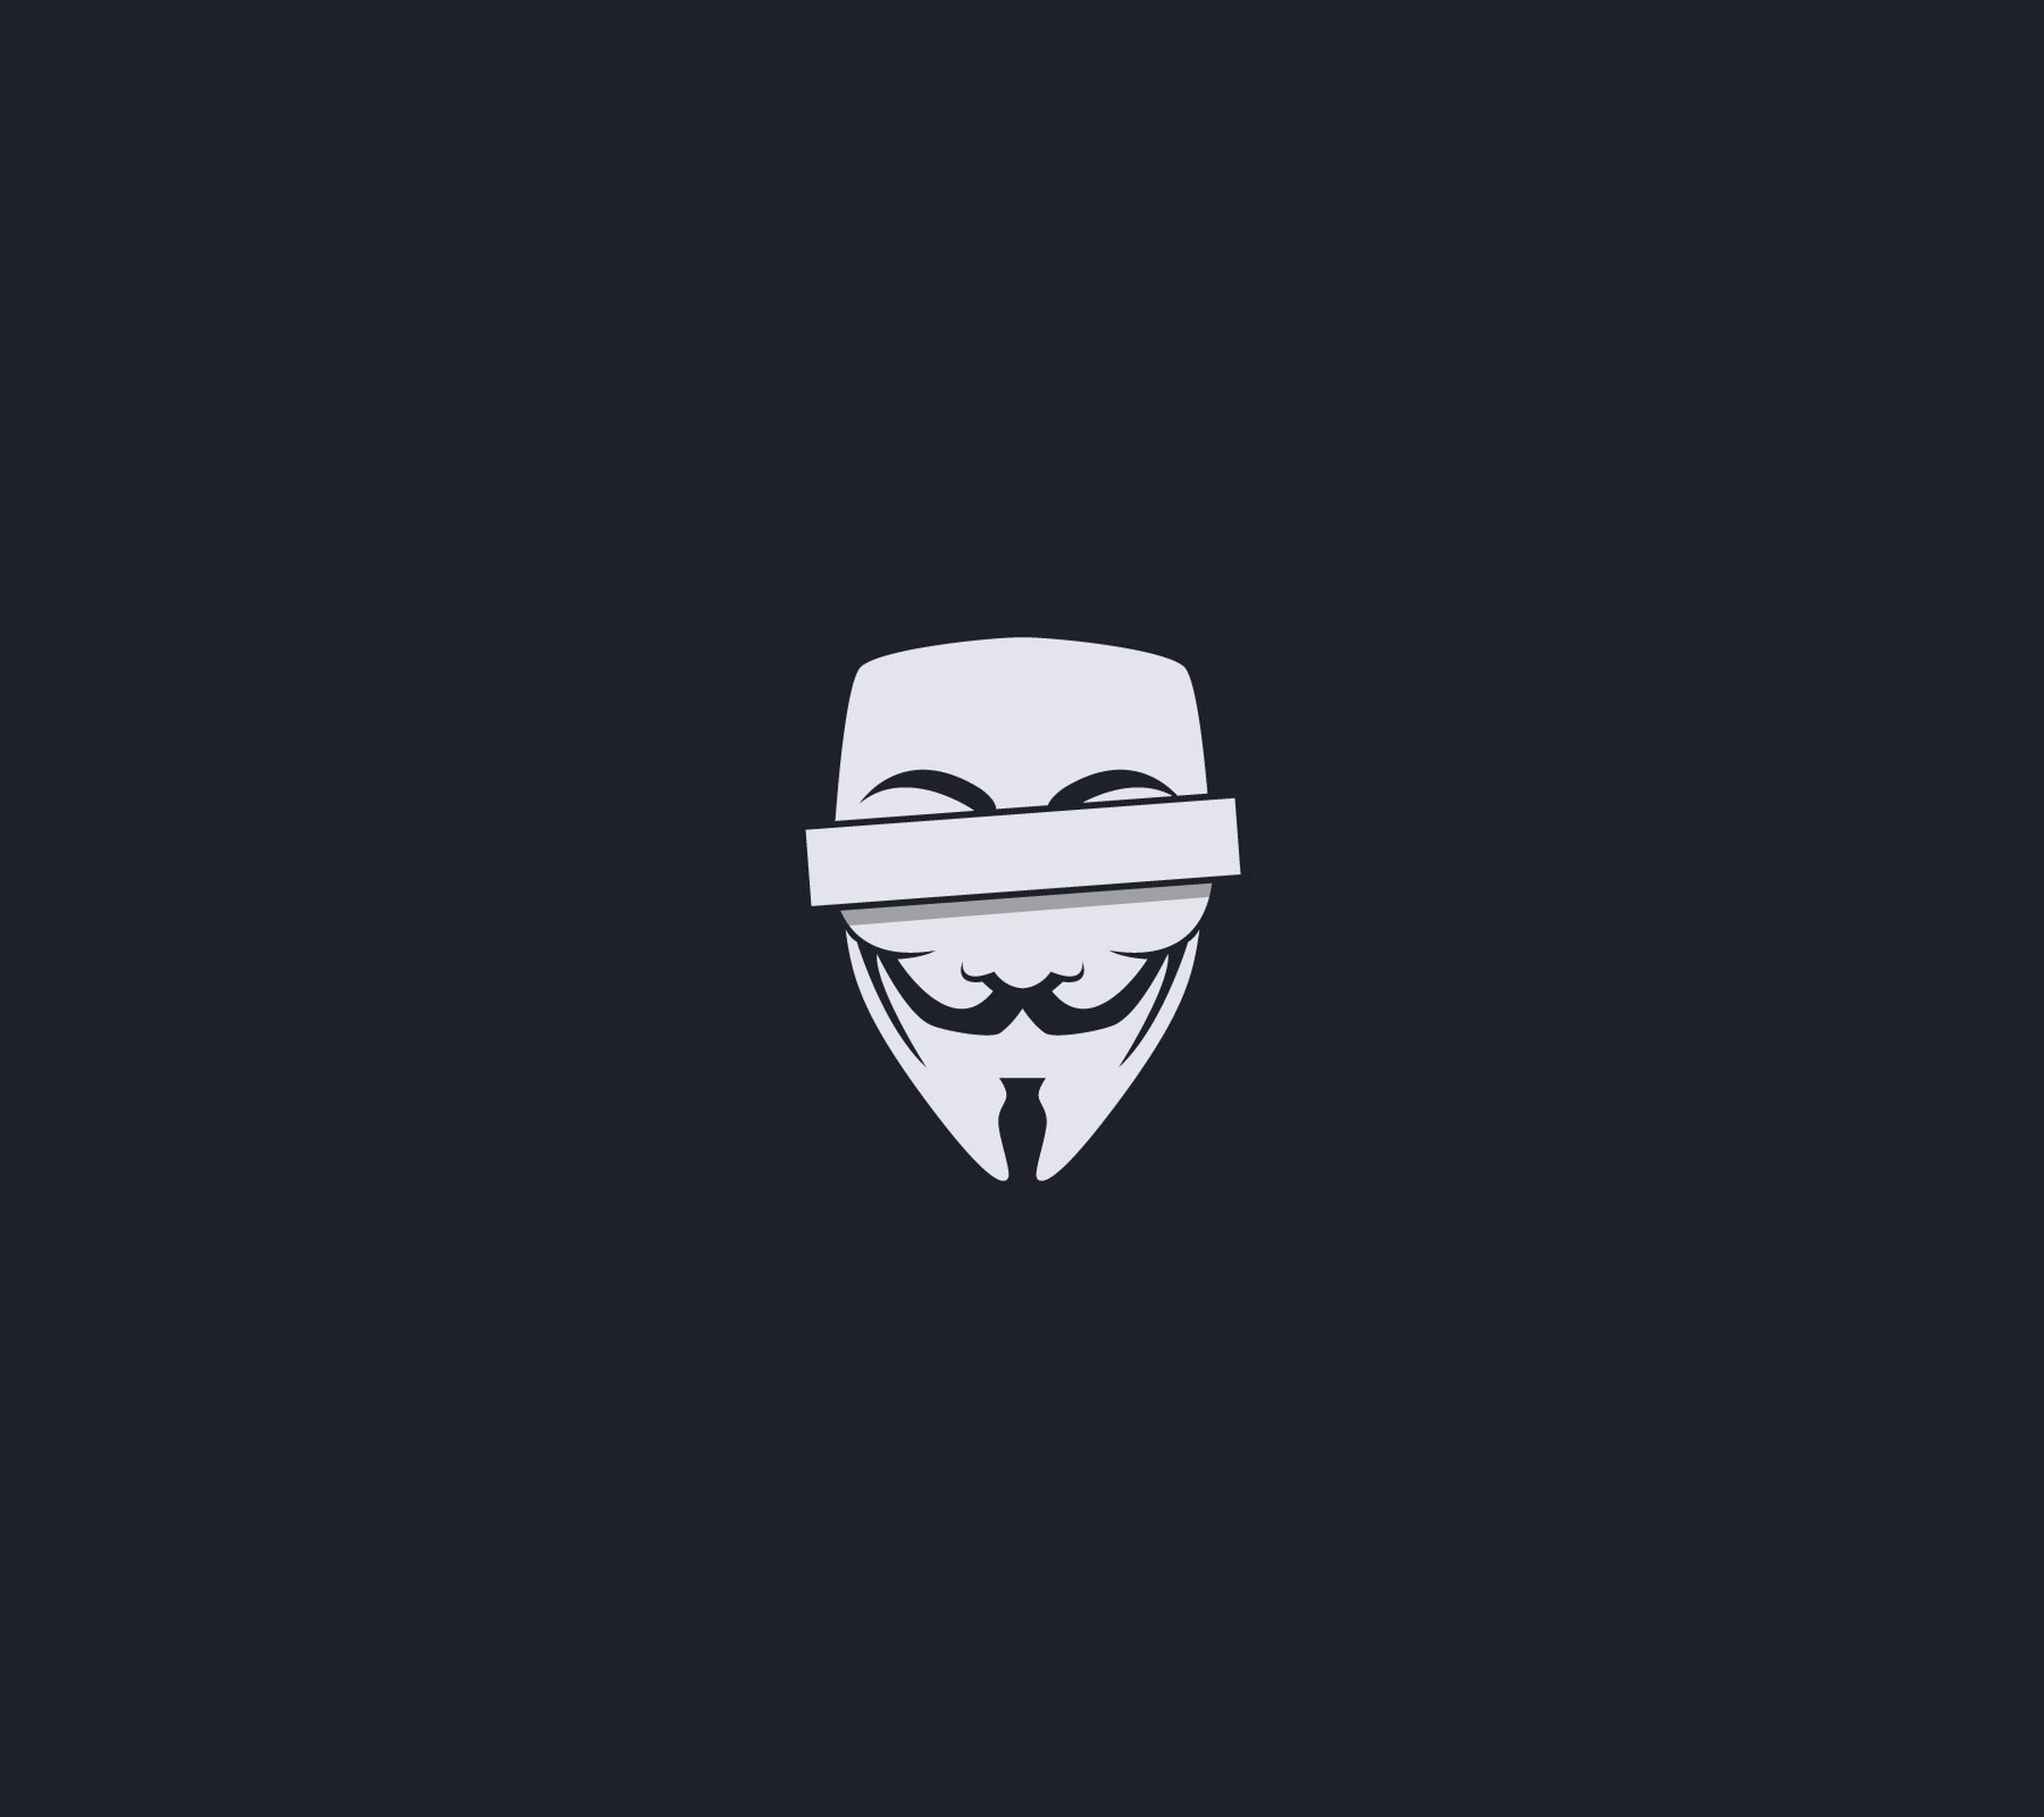 Cute Hacker Wallpaper Anonymus Minimalism Hd Artist 4k Wallpapers Images